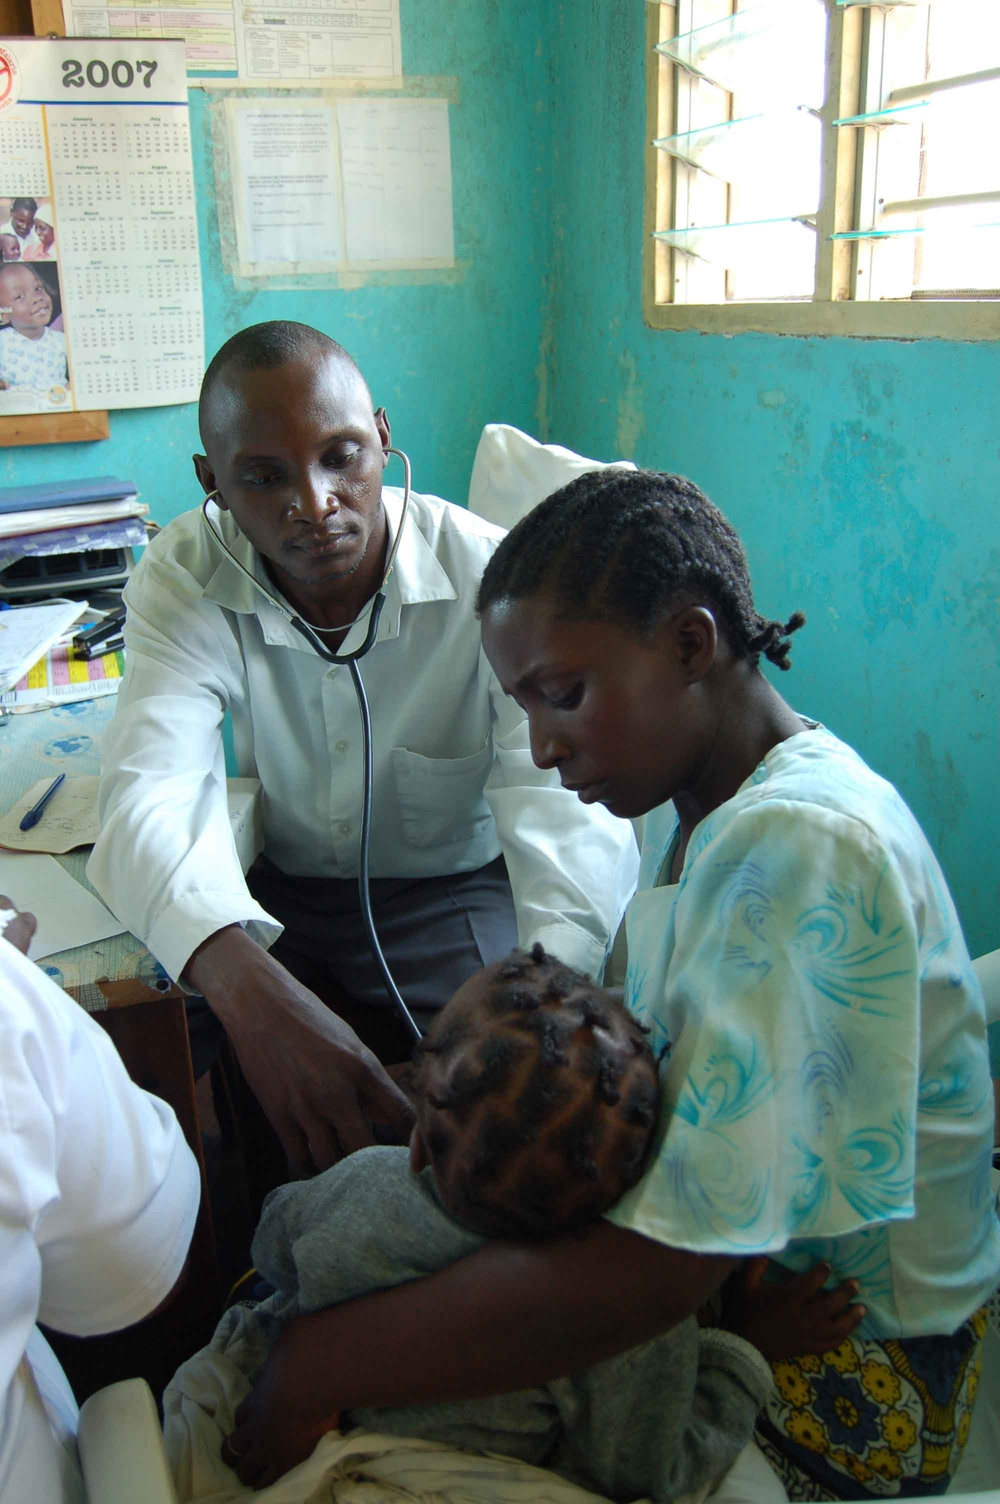 Peter a clinical officer treats a patient at the Gongoni health centre in Malindi, Kenya, July 2007. Infectious diseases are on the rise in Kenya, for example Malaria alone kills more than 34,000 children annually.